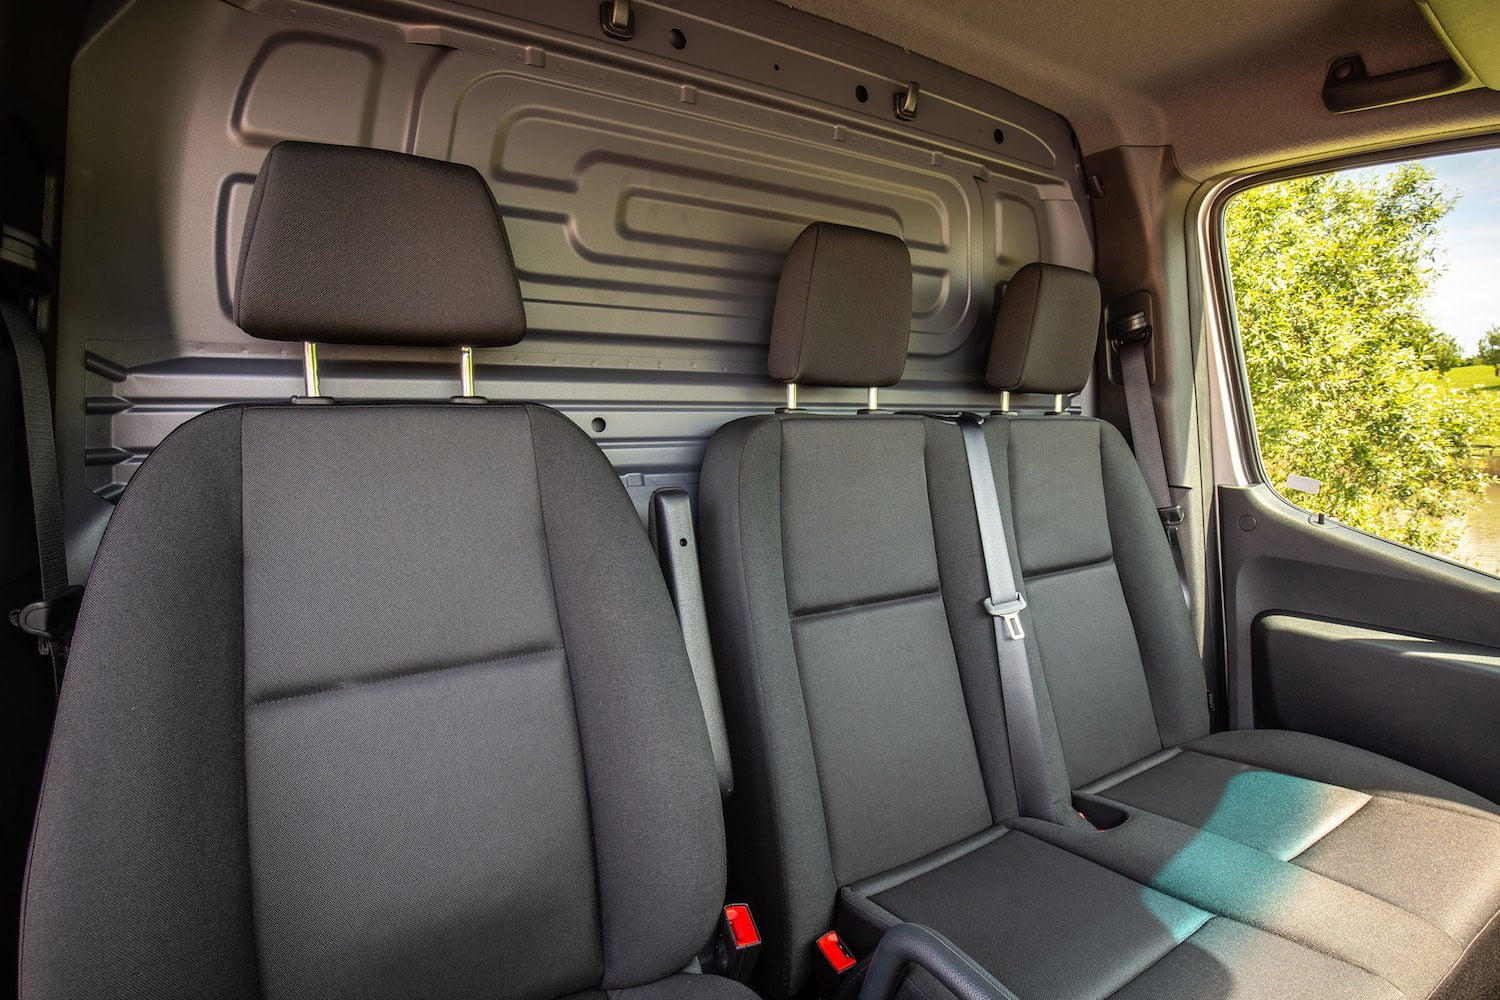 Mercedes-Benz Sprinter seating | The Van Expert